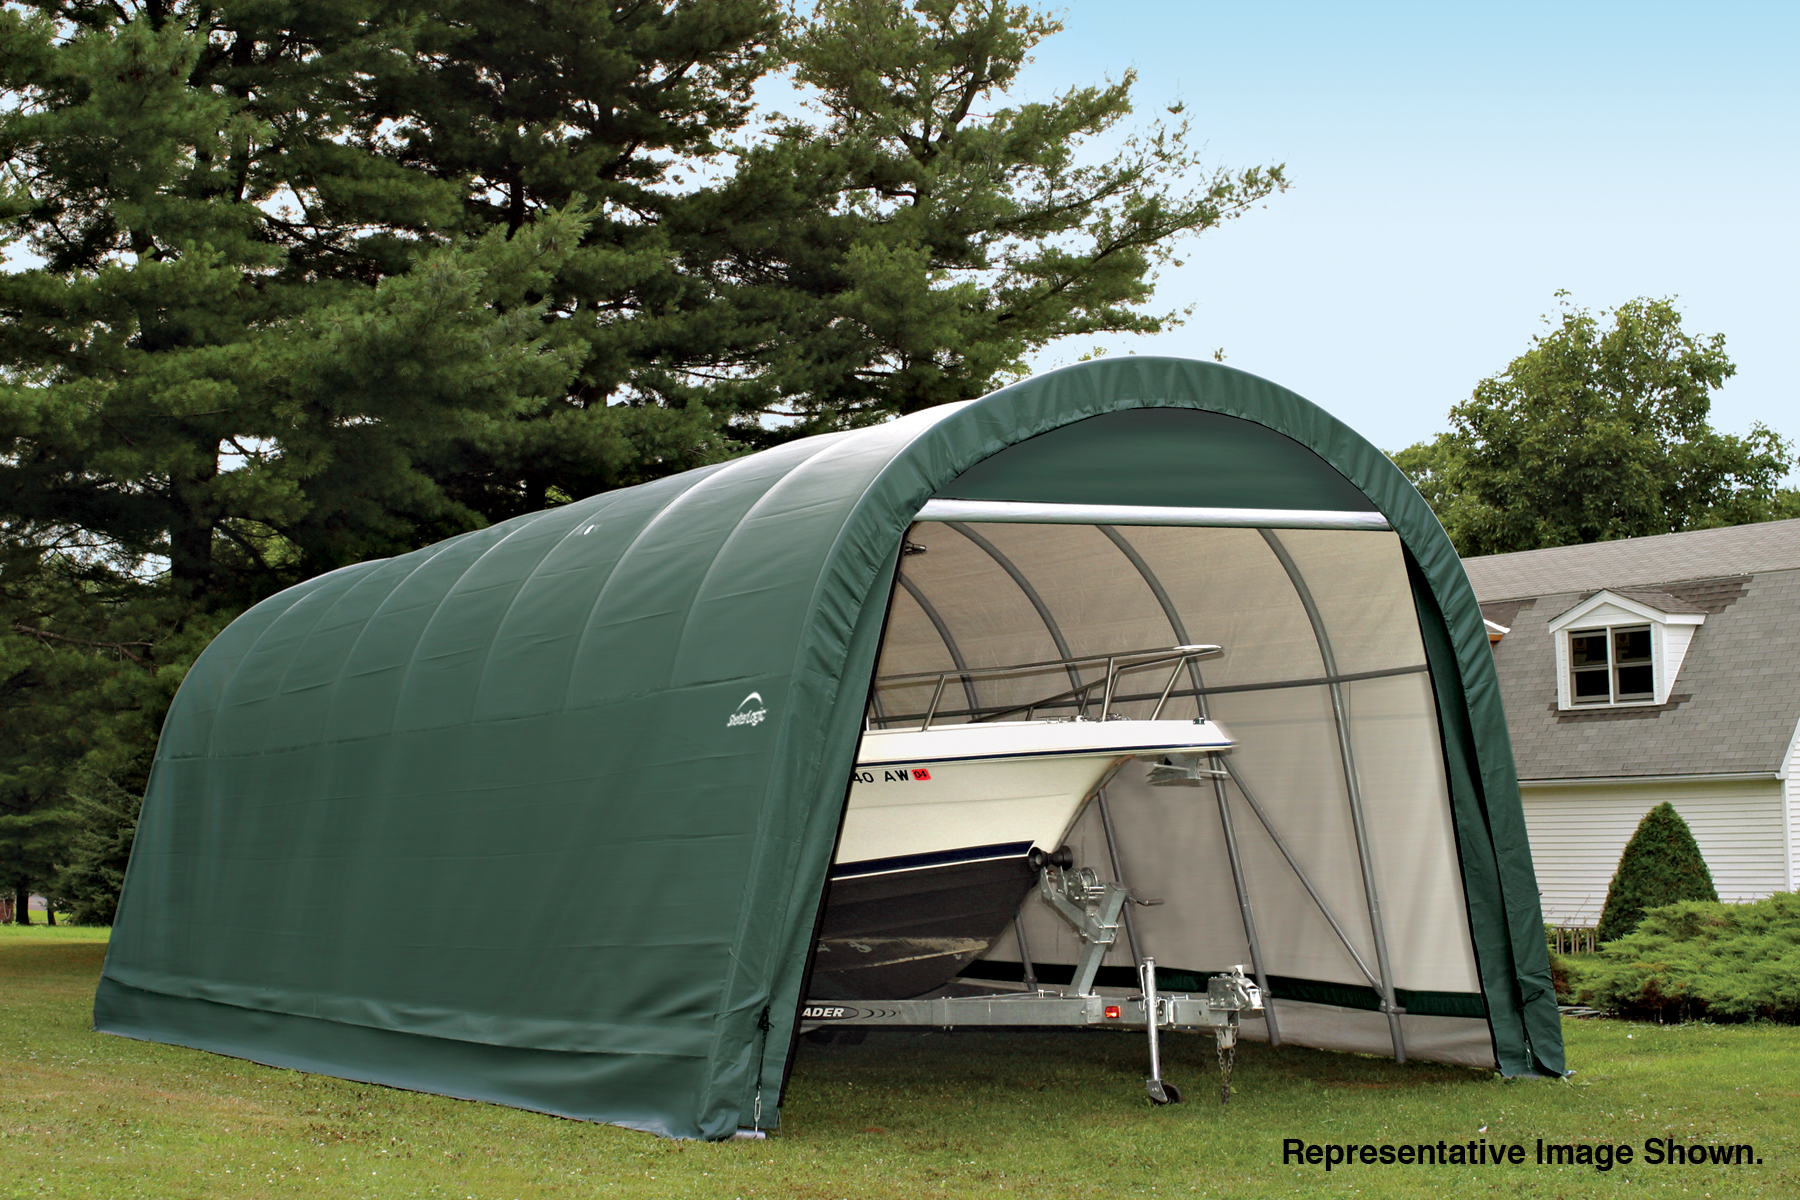 Instruction To Set Up A Portable Carport : Portable car garage shelters the best carport